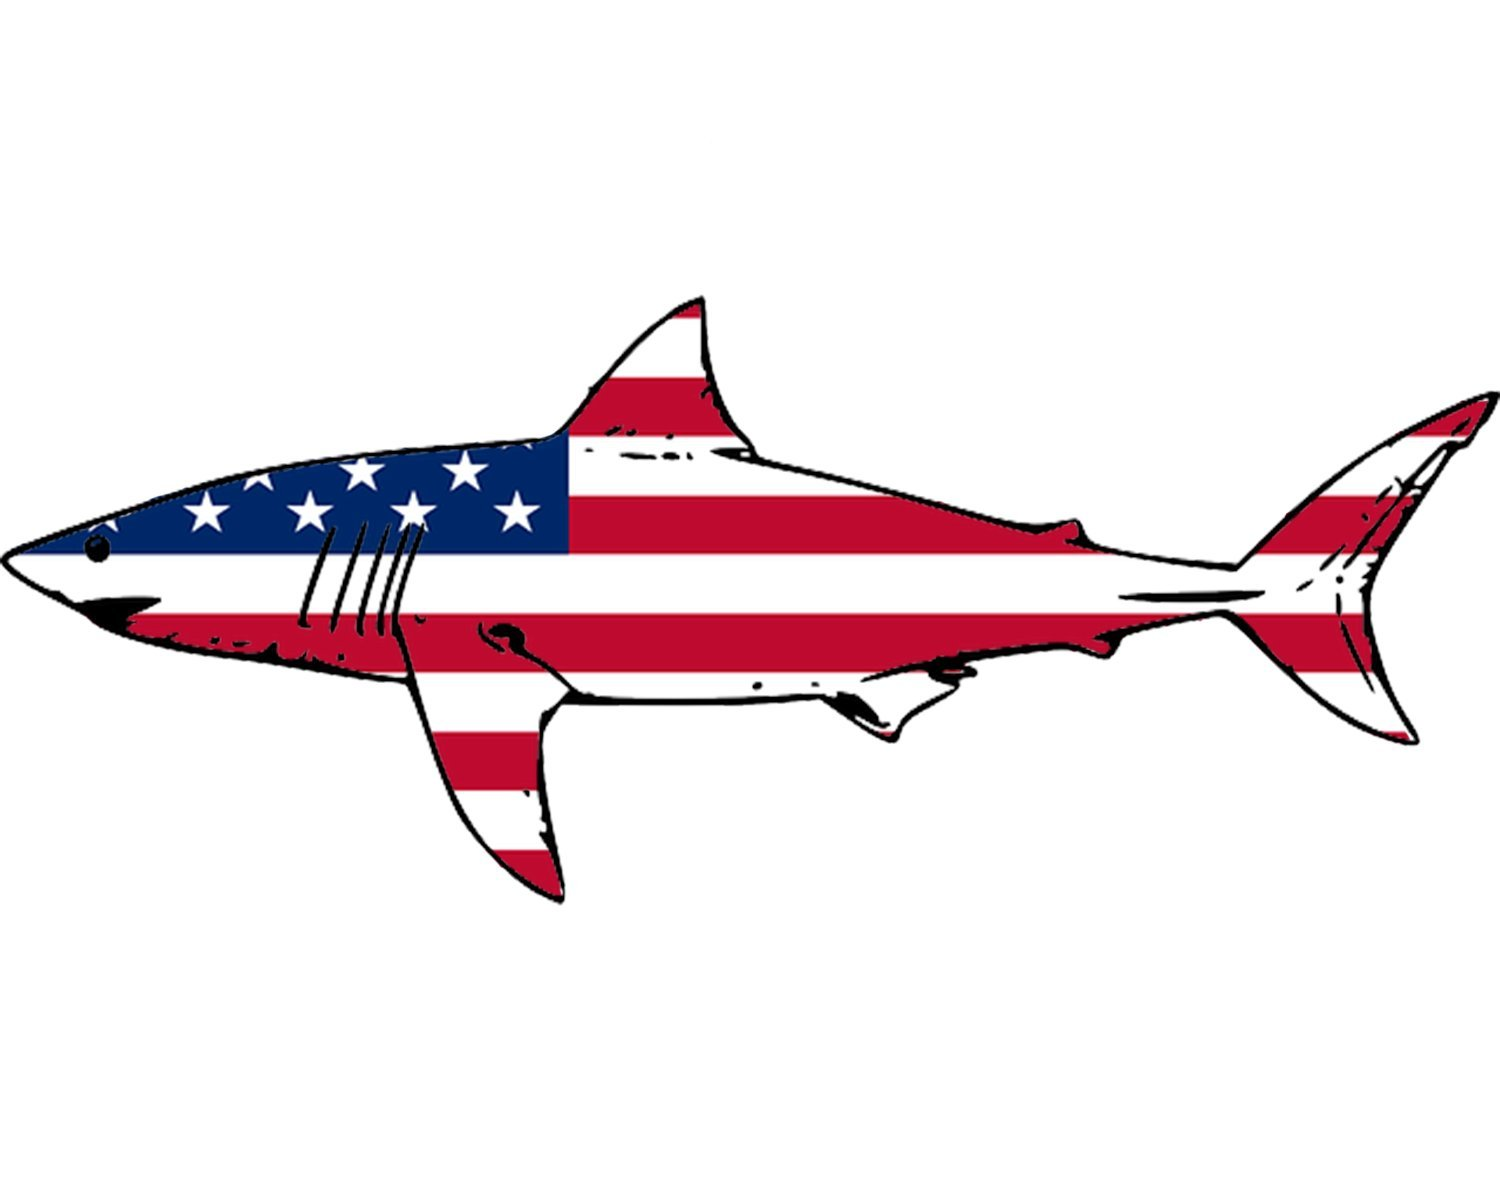 American flag red fish clipart png free stock Rogue River Tactical Shark Fish USA Flag Sticker Decal Fishing Bumper  Sticker Fish Patriotic United Auto Decal Car Truck Boat RV Real Life Rod  Tackle ... png free stock